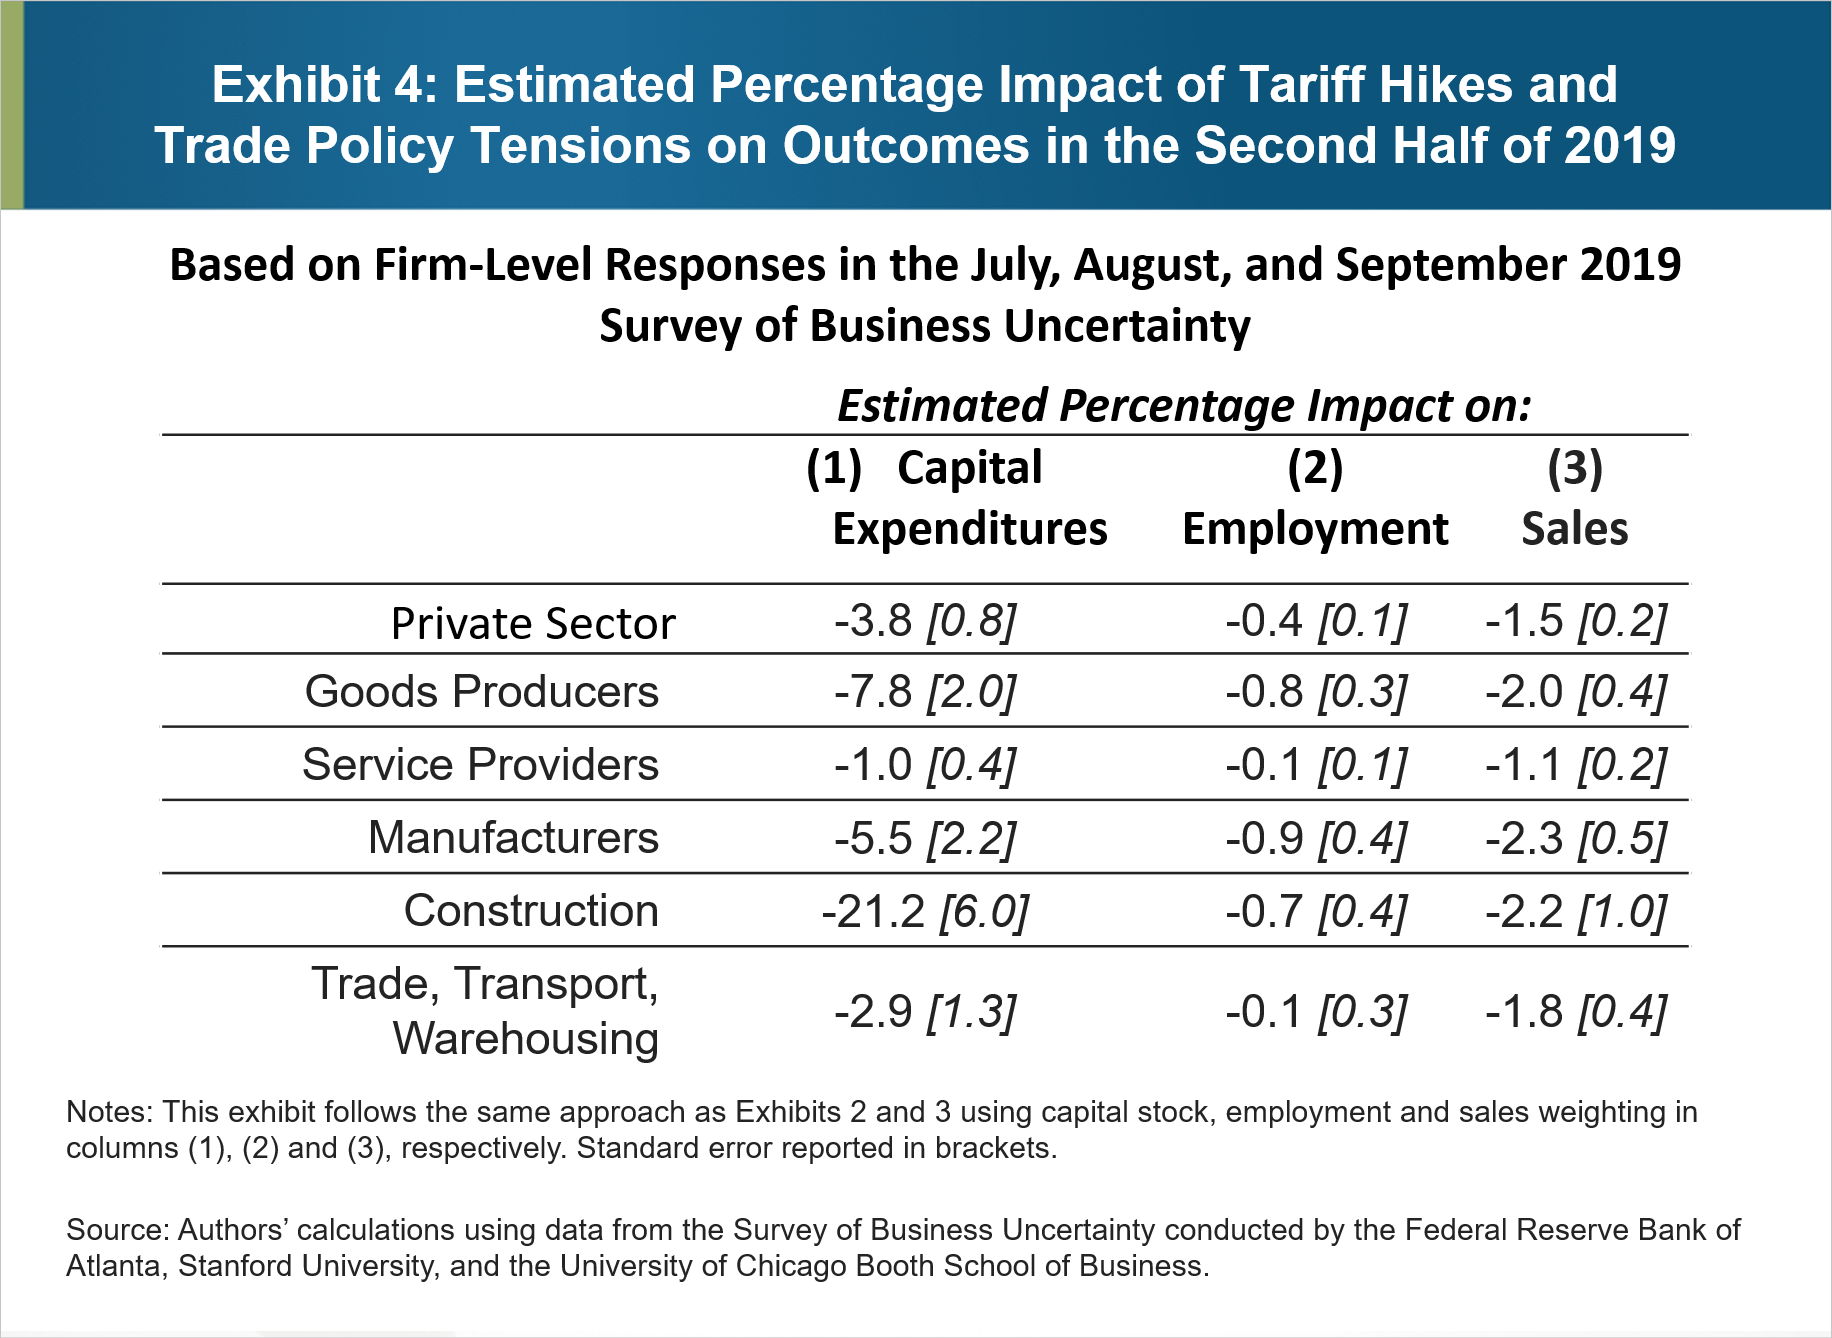 Exhibit 4: Estimated Percentage Impact of Tariff Hikes and Trade Policy Tensions on Outcomes in the Second Half of 2019